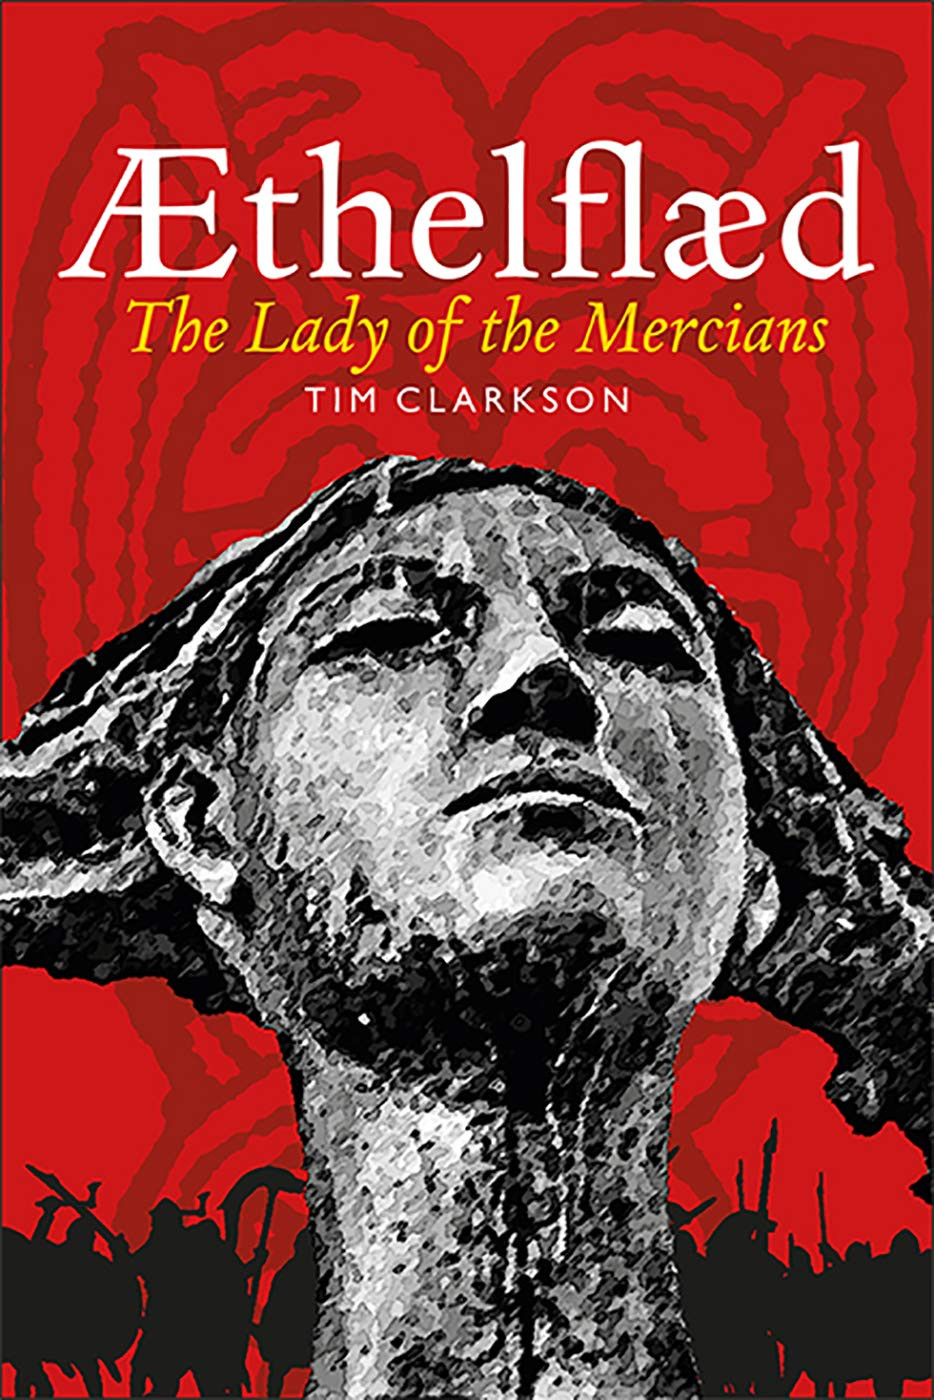 Book cover of ethelflaed Lady of the mercians by Tim Clarkson